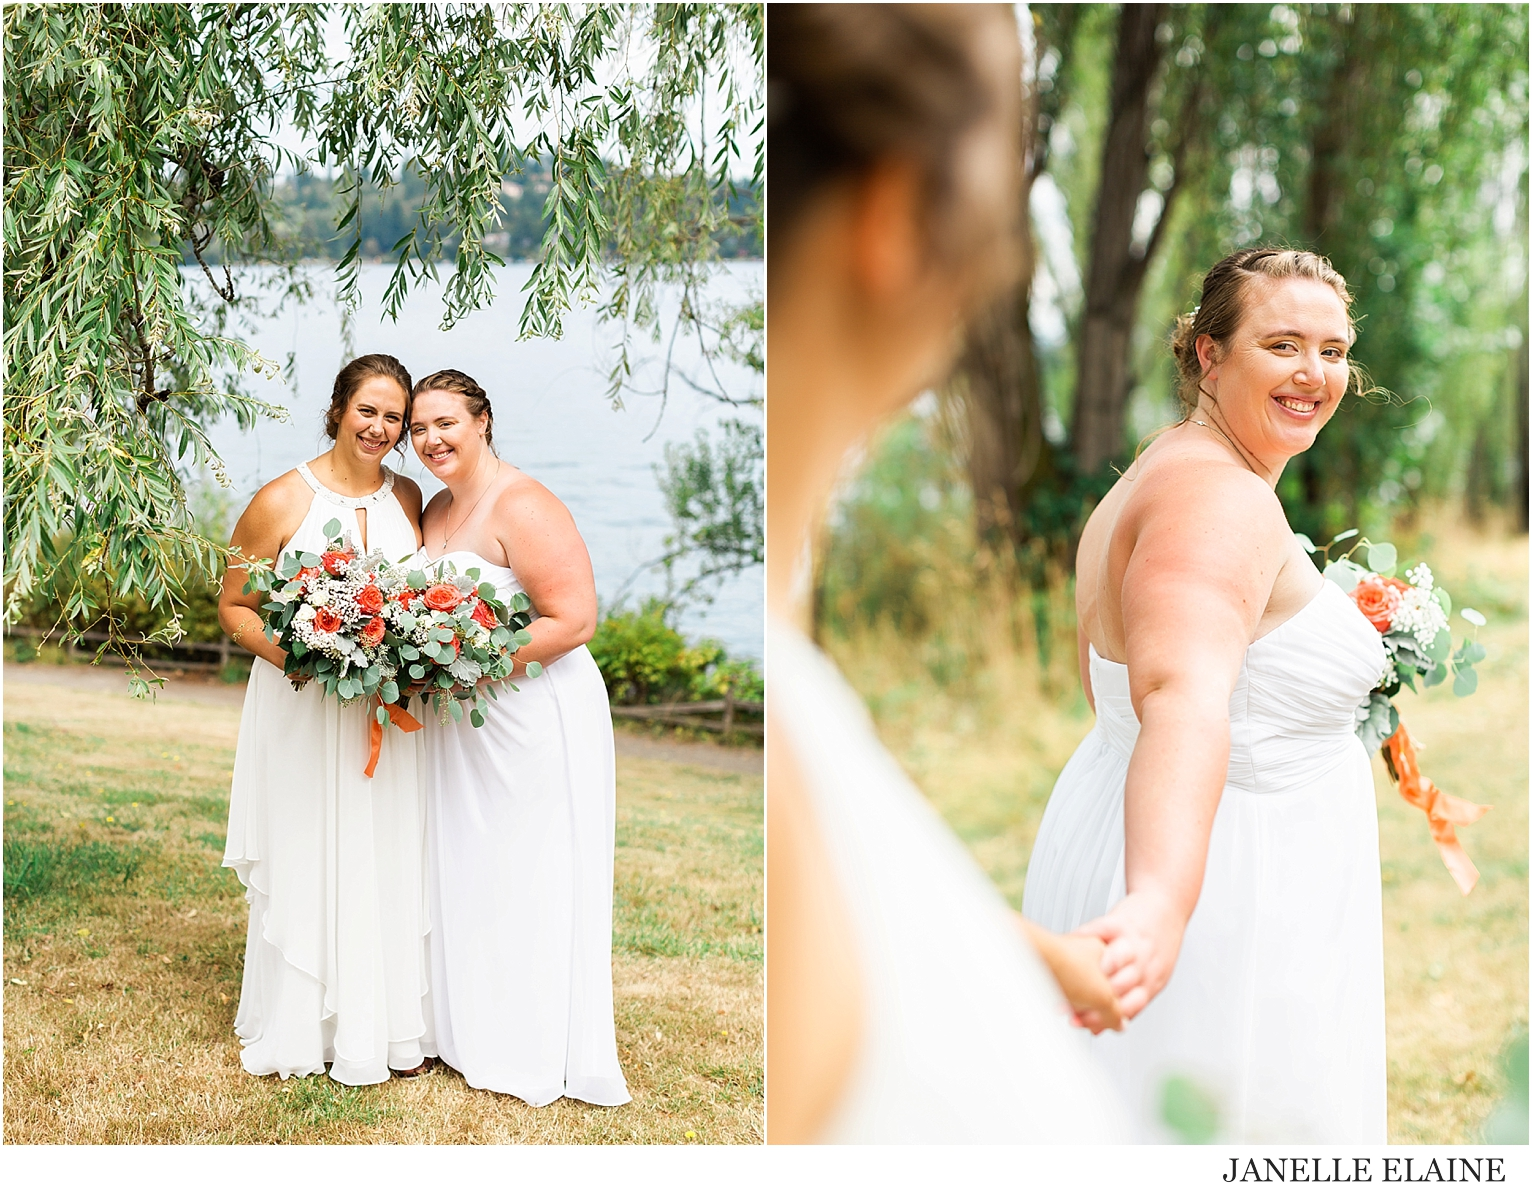 liz and christina lanning-first look and portraits-luther burbank park-janelle elaine photography-201.jpg